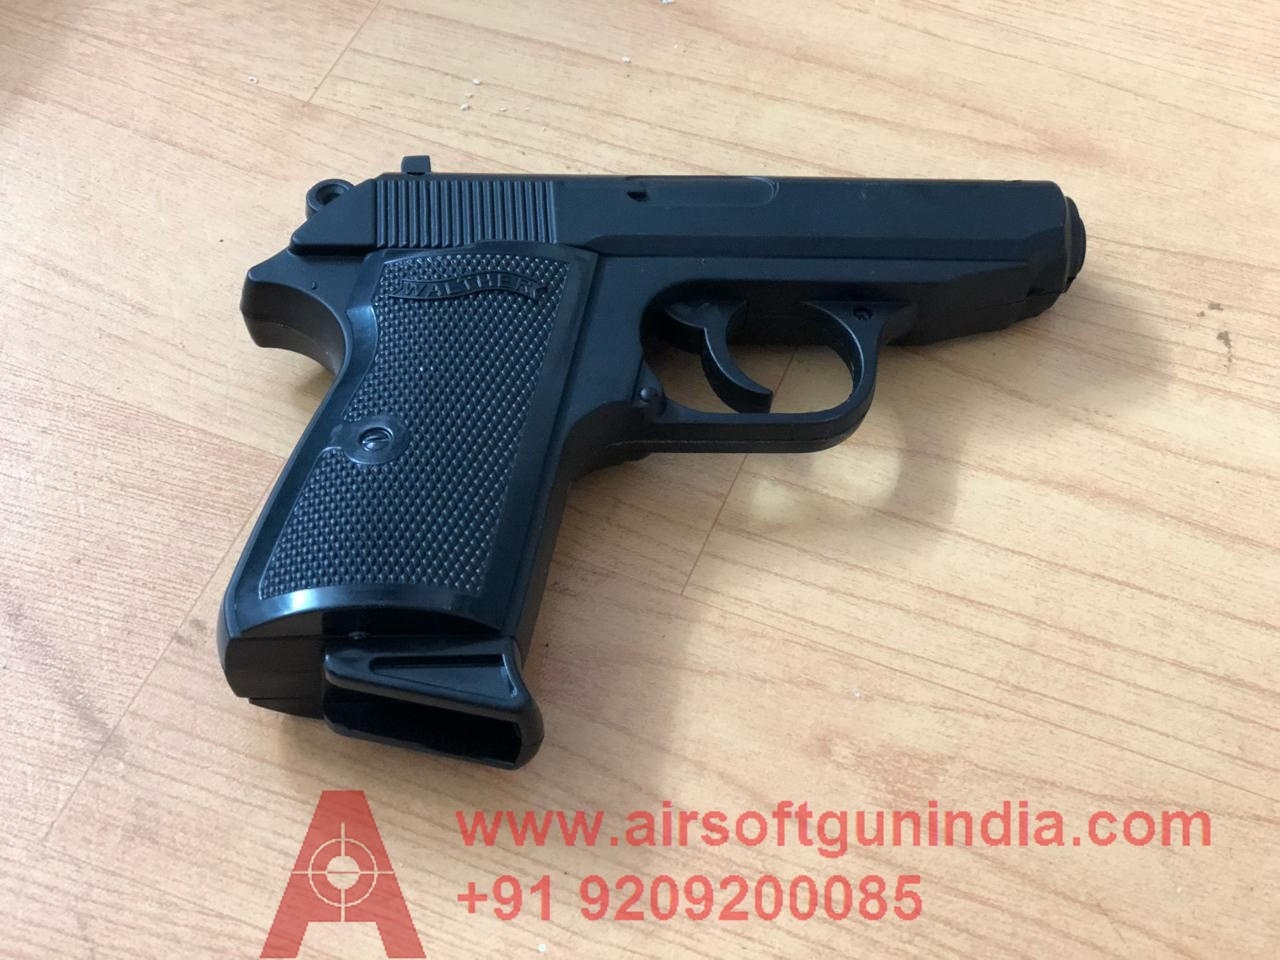 Walther Ppk 9mm Black Cigarette Lighter By Airsoft Gun India